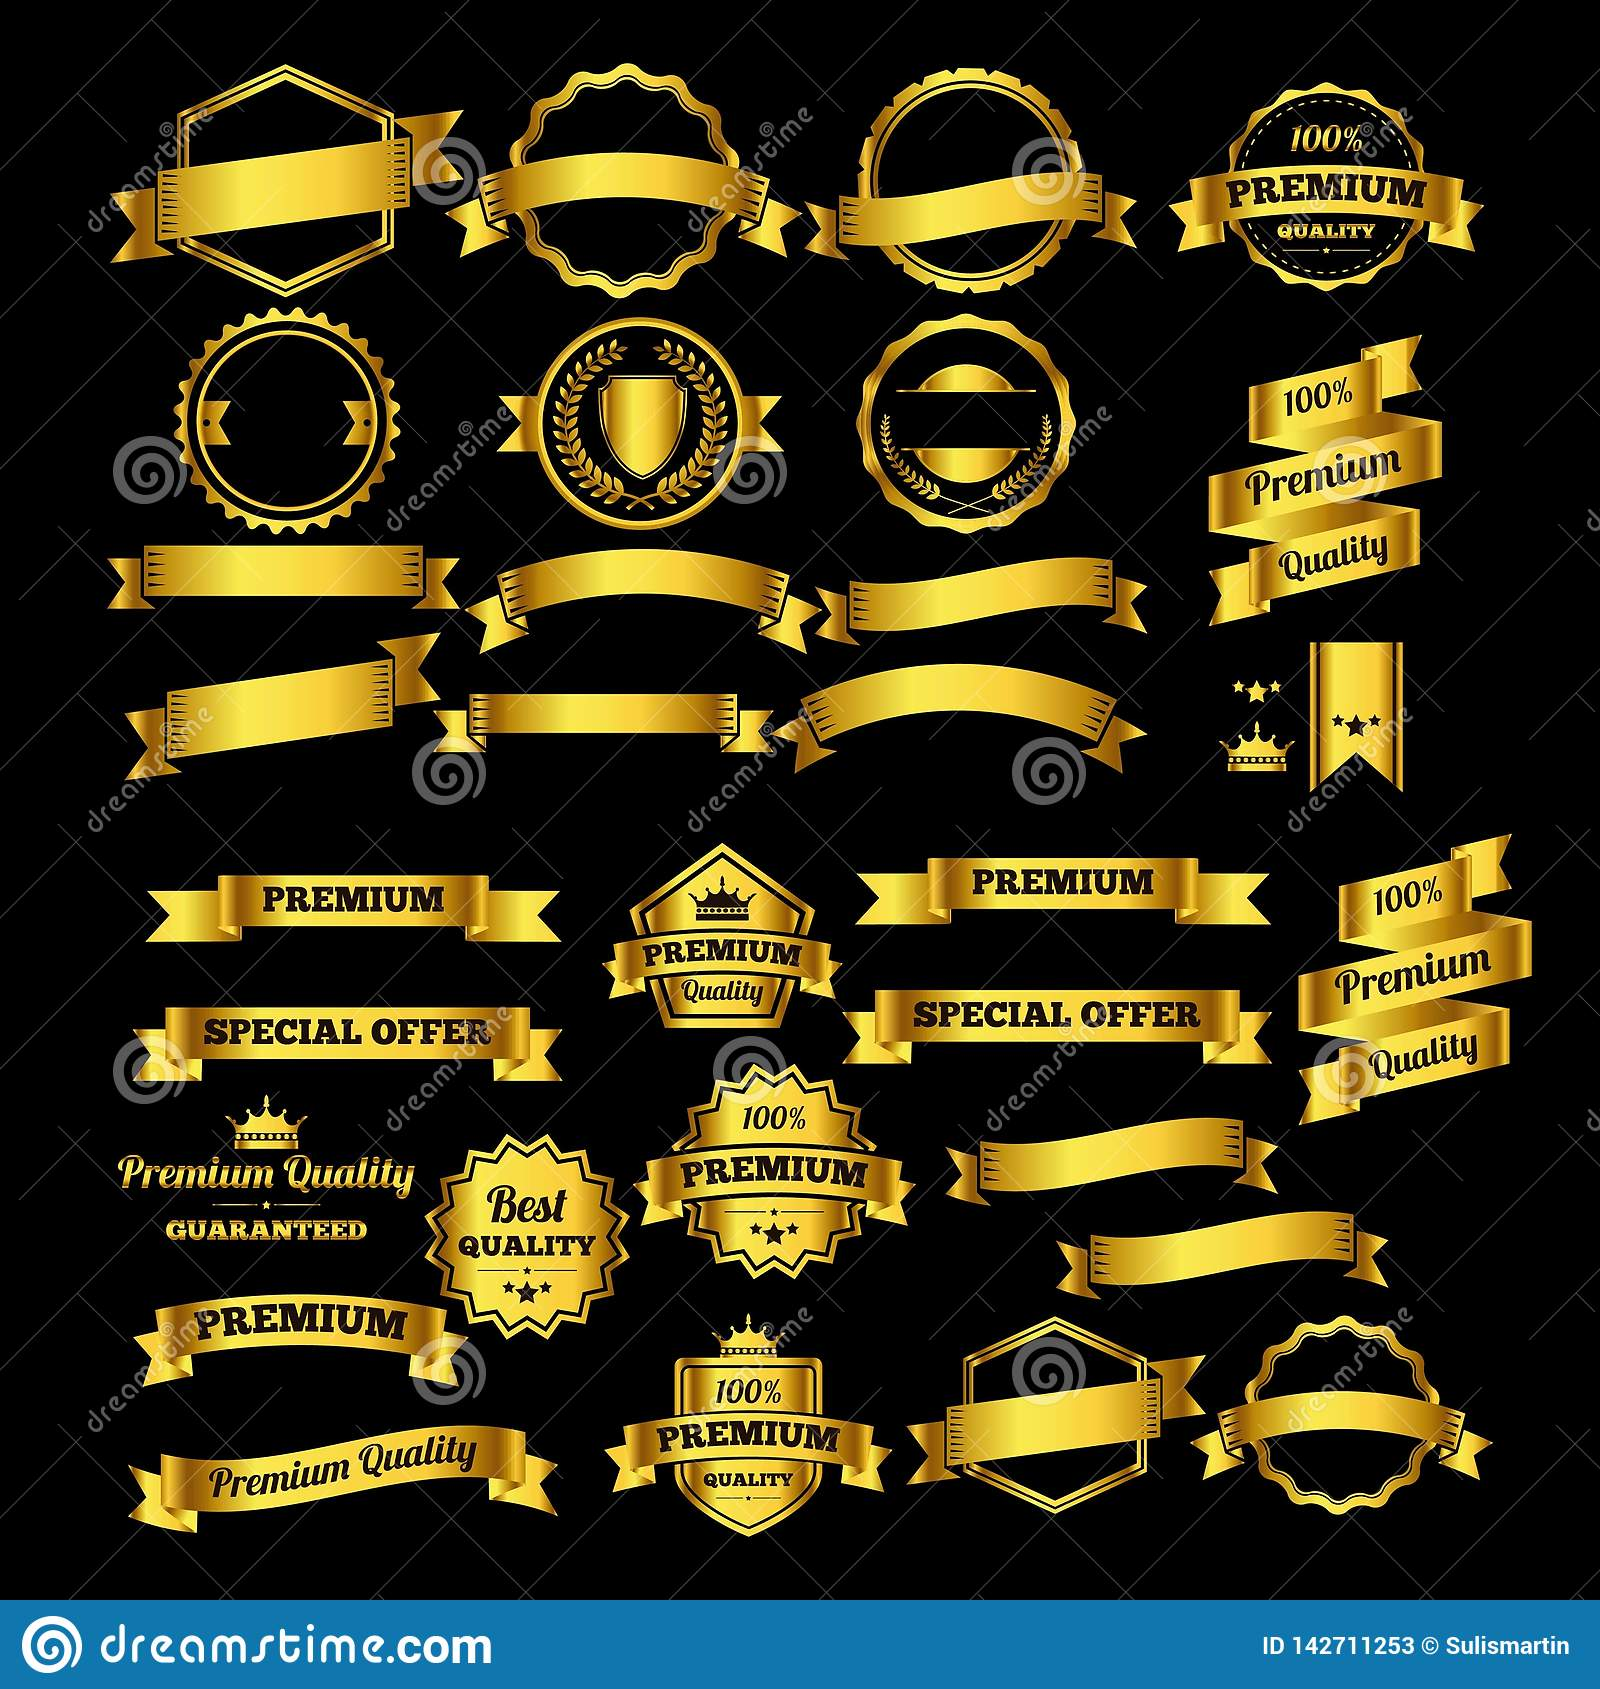 Luxury gold design badges and labels collection - logo design Vector